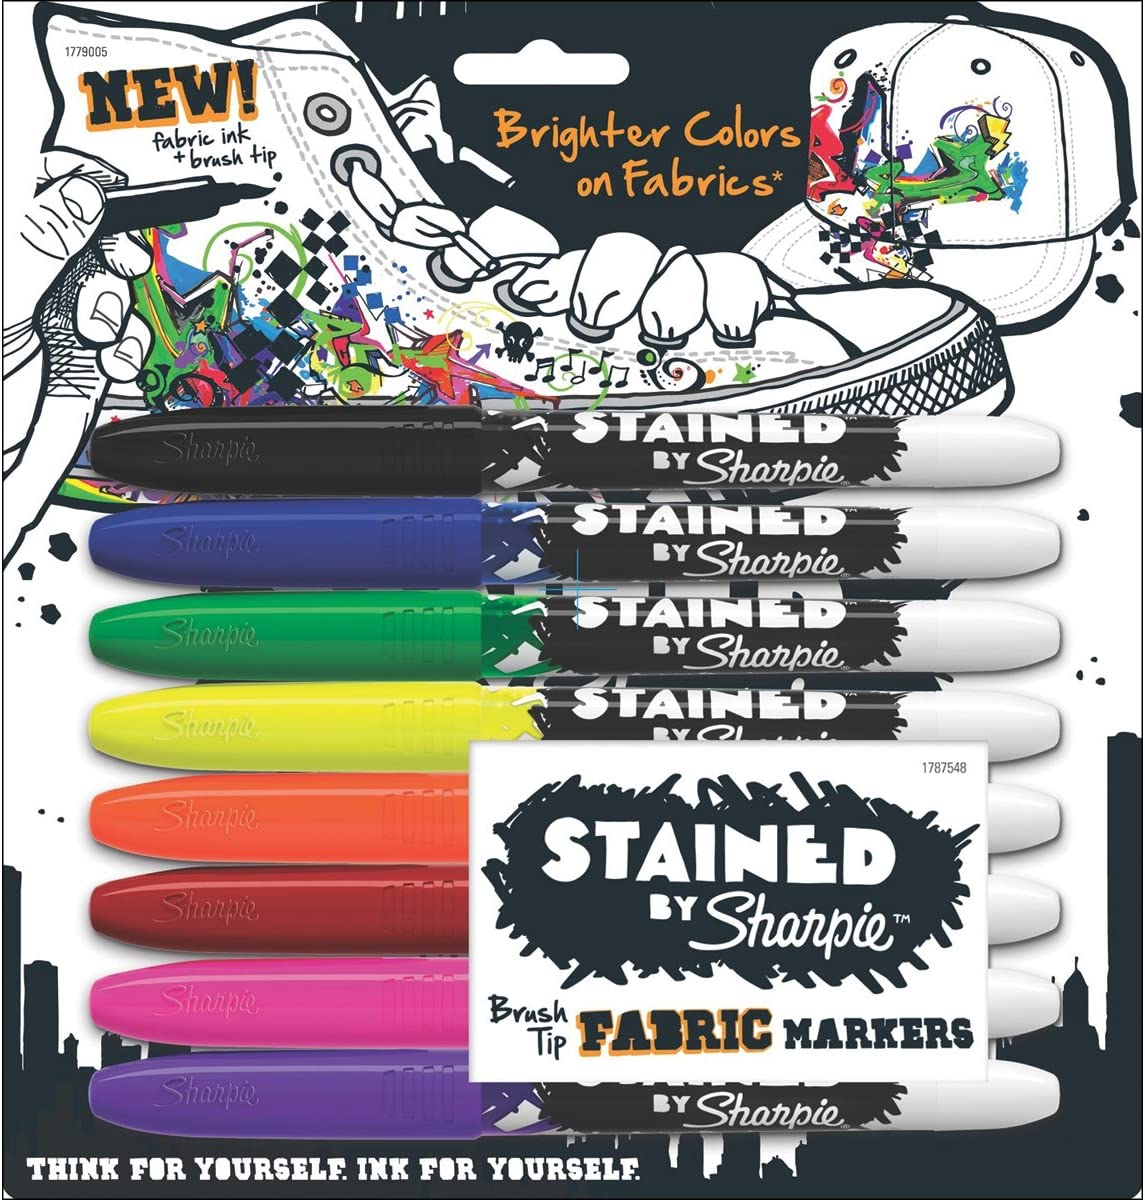 Sharpie 1779005 Stained Fabric Markers, Brush Tip, Assorted Colors, 8-Count